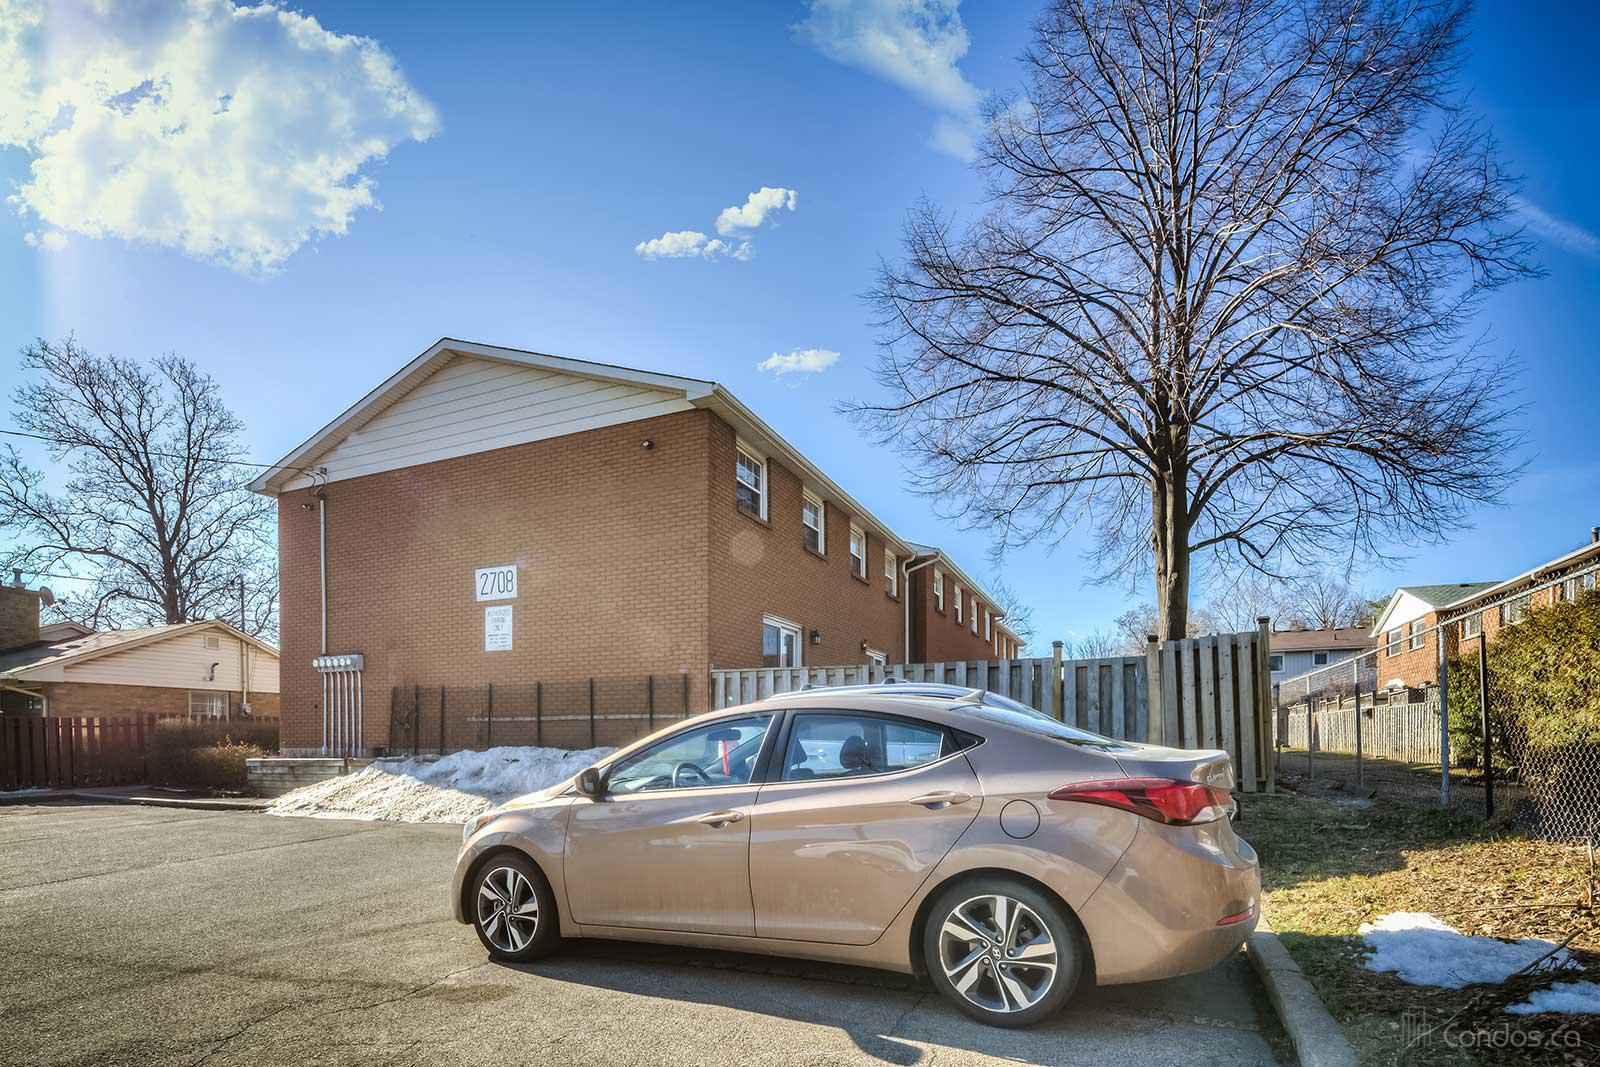 2708 Barton Condos at 2708 Barton St E, Hamilton City 0